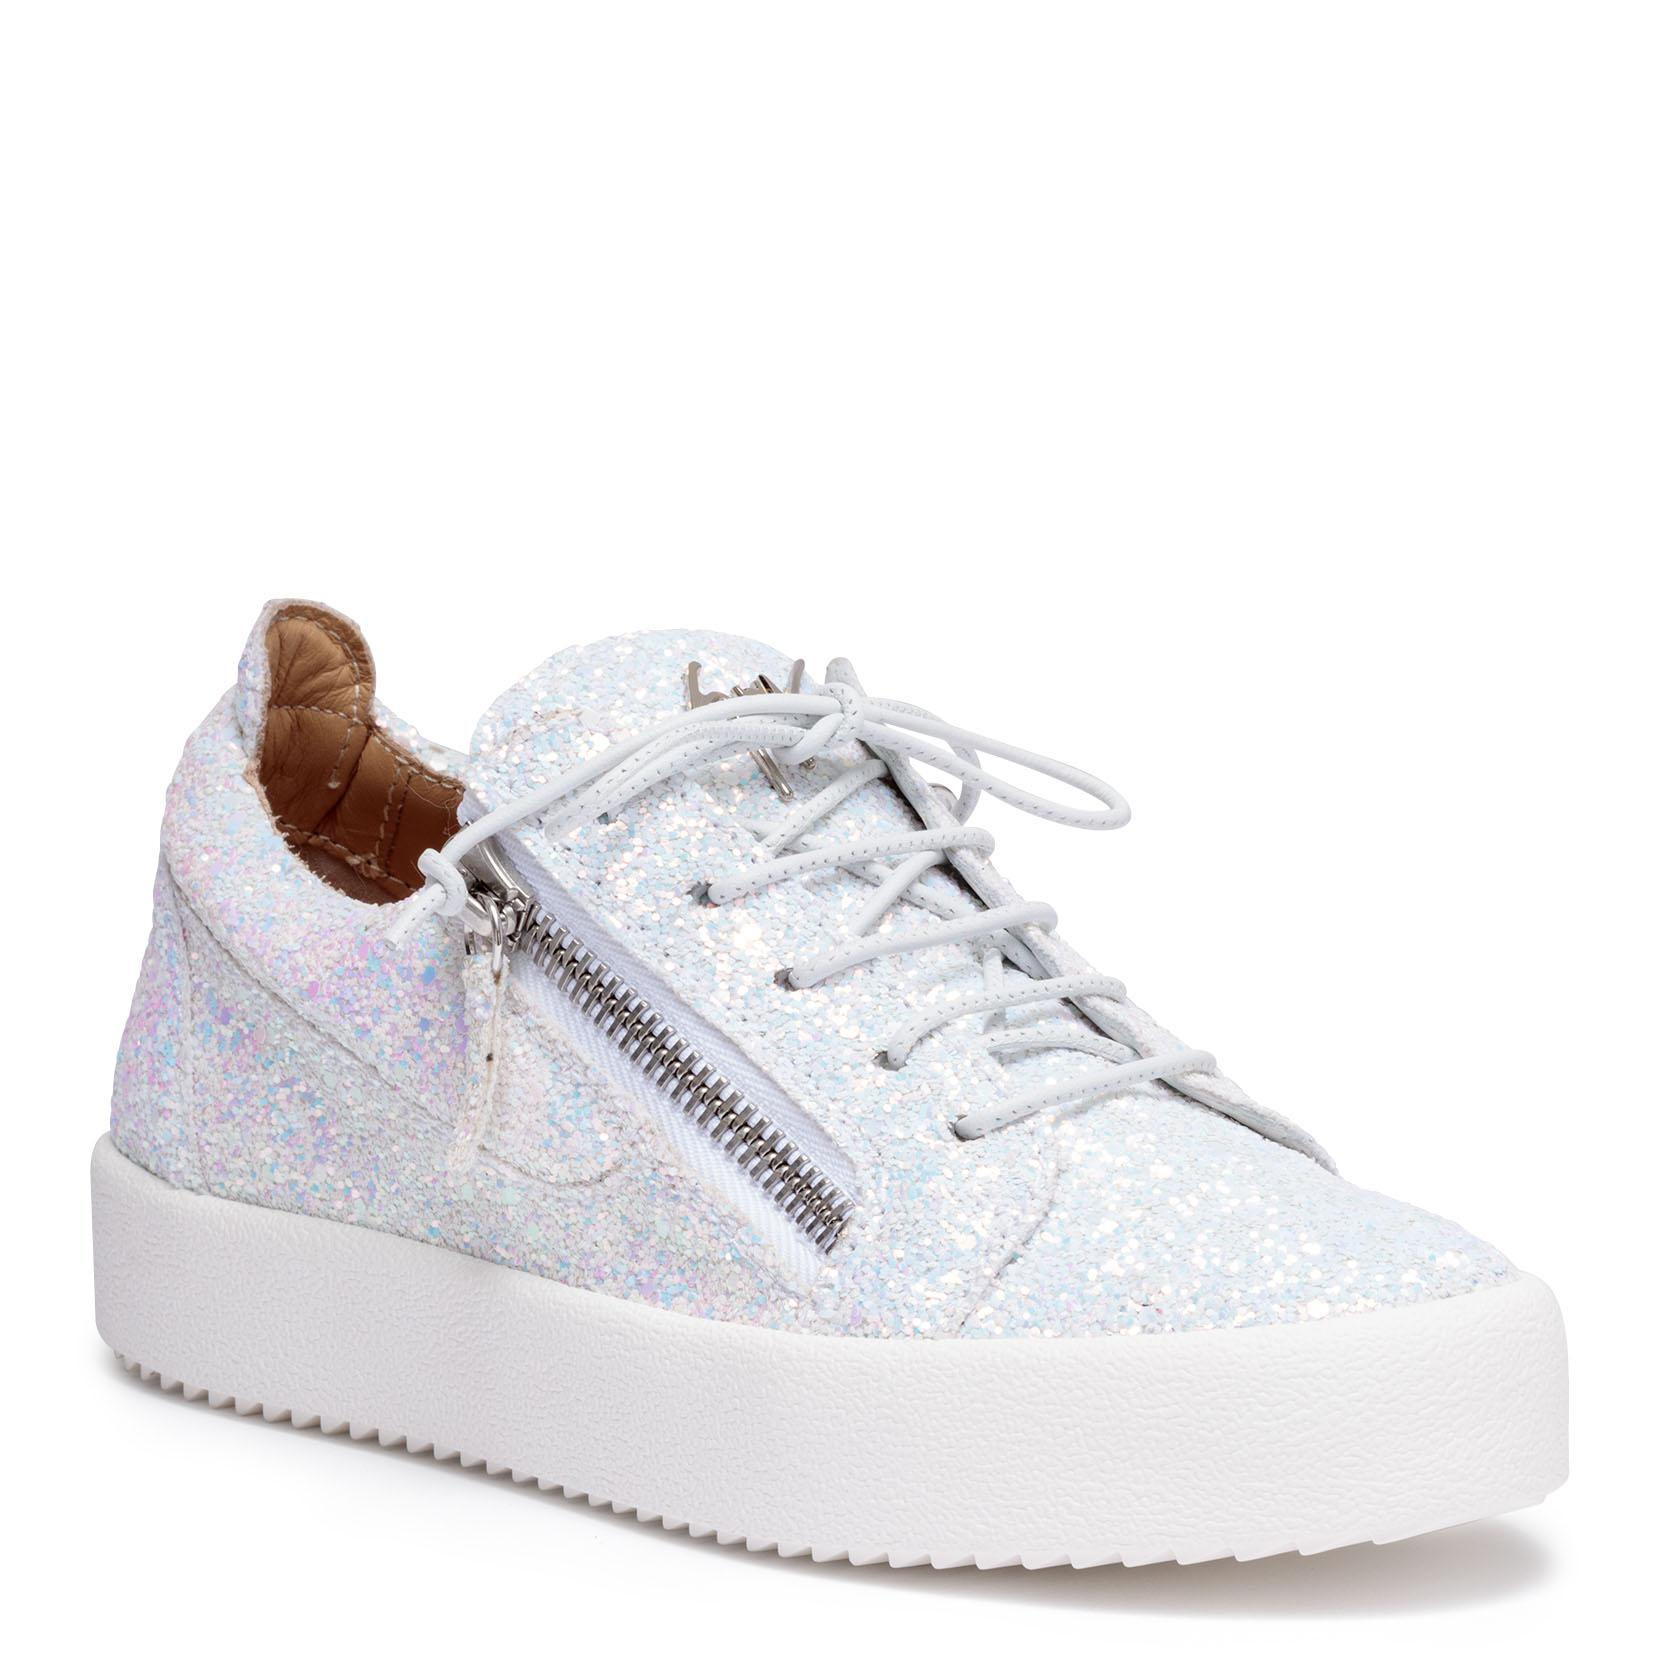 Clearance The Cheapest Buy Cheap In China Kriss Glitter white glitter sneakers Giuseppe Zanotti How Much Sale Online 2BMKVr